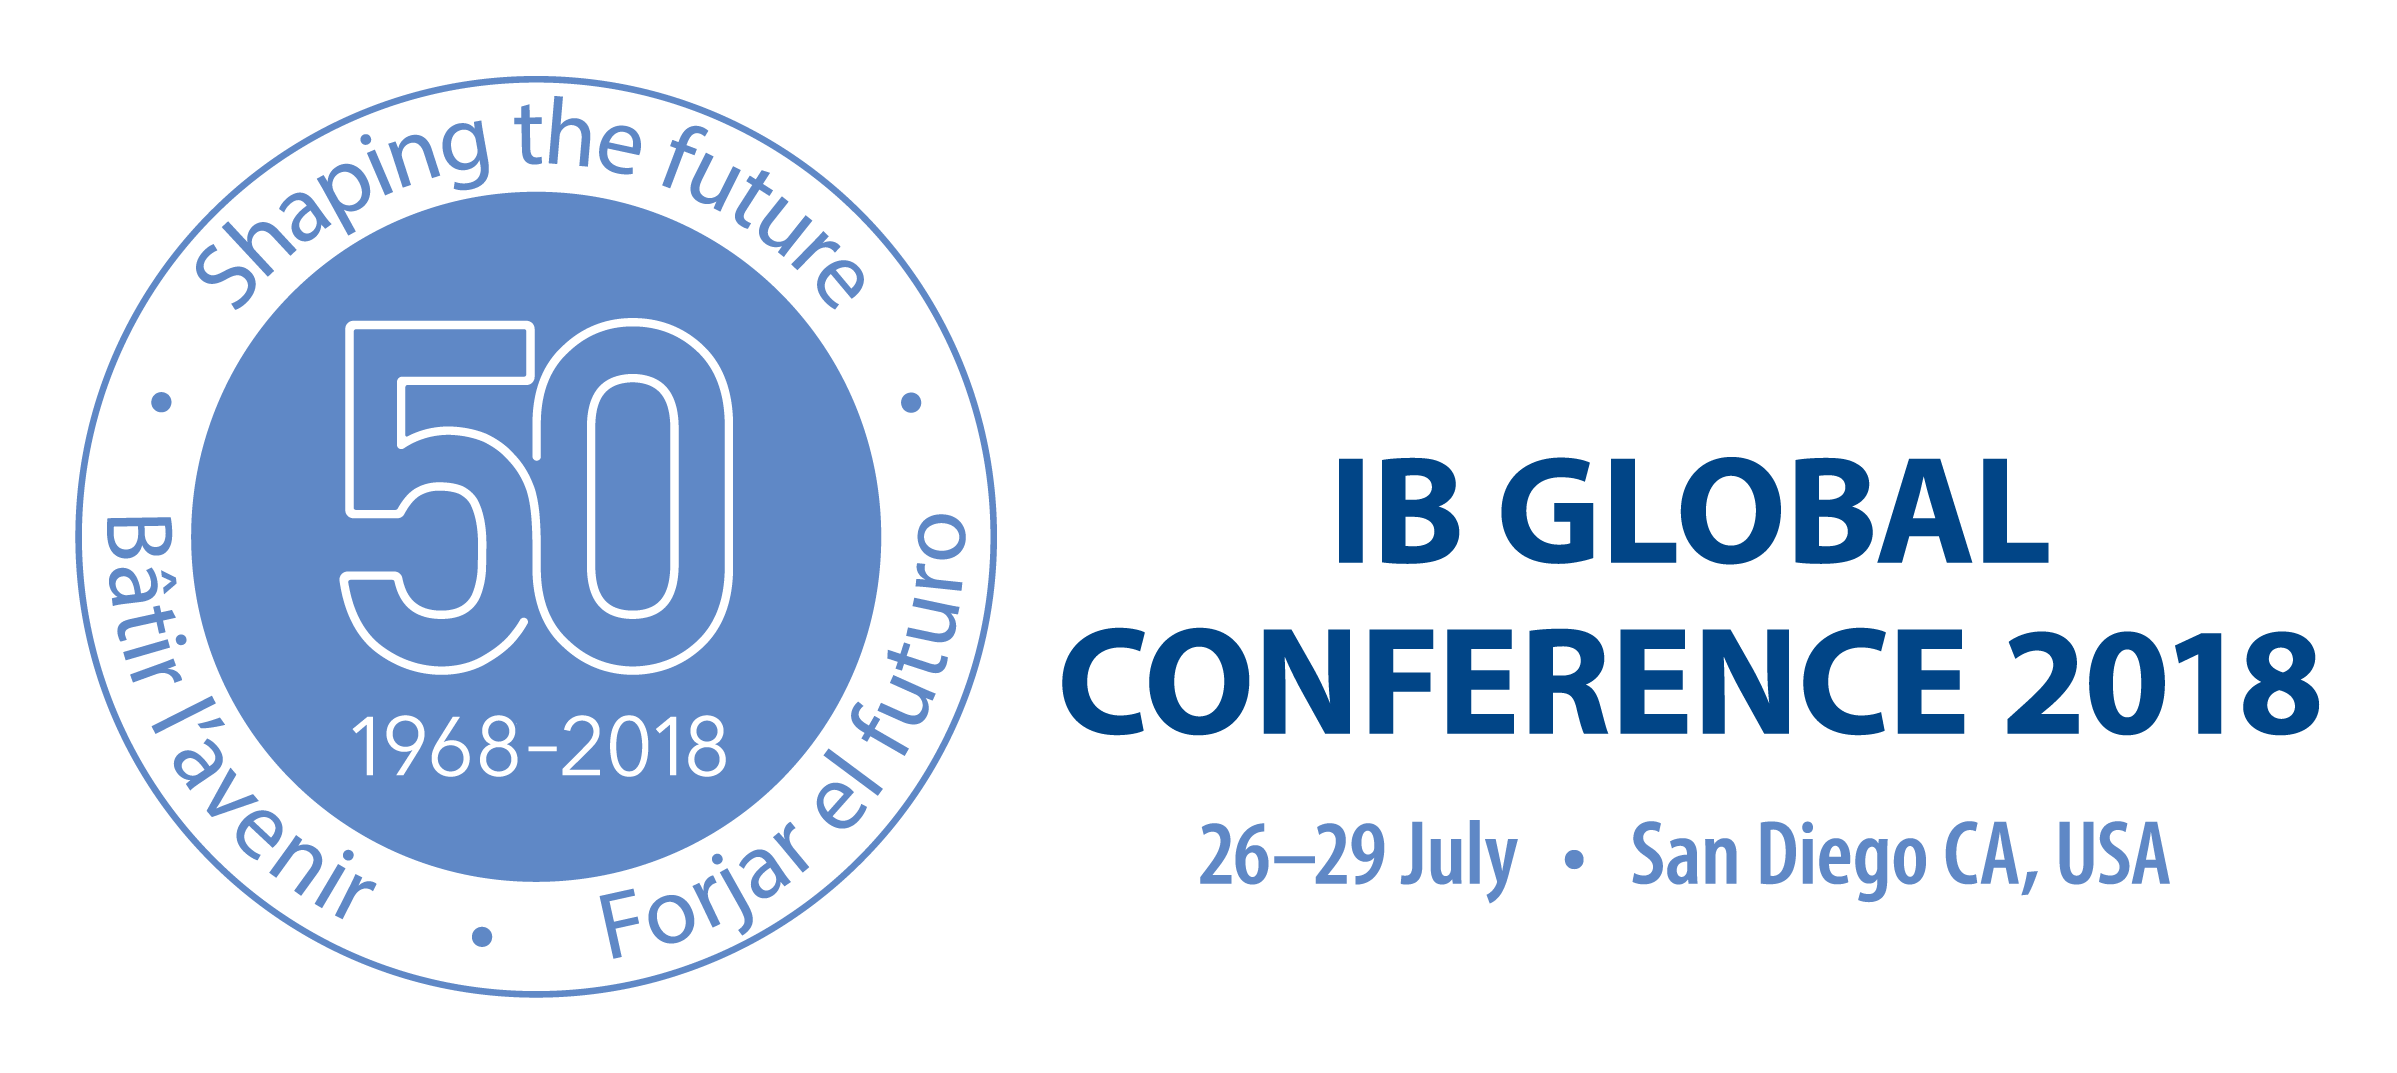 IB Global Conference 2018 - San Diego, CA, USA